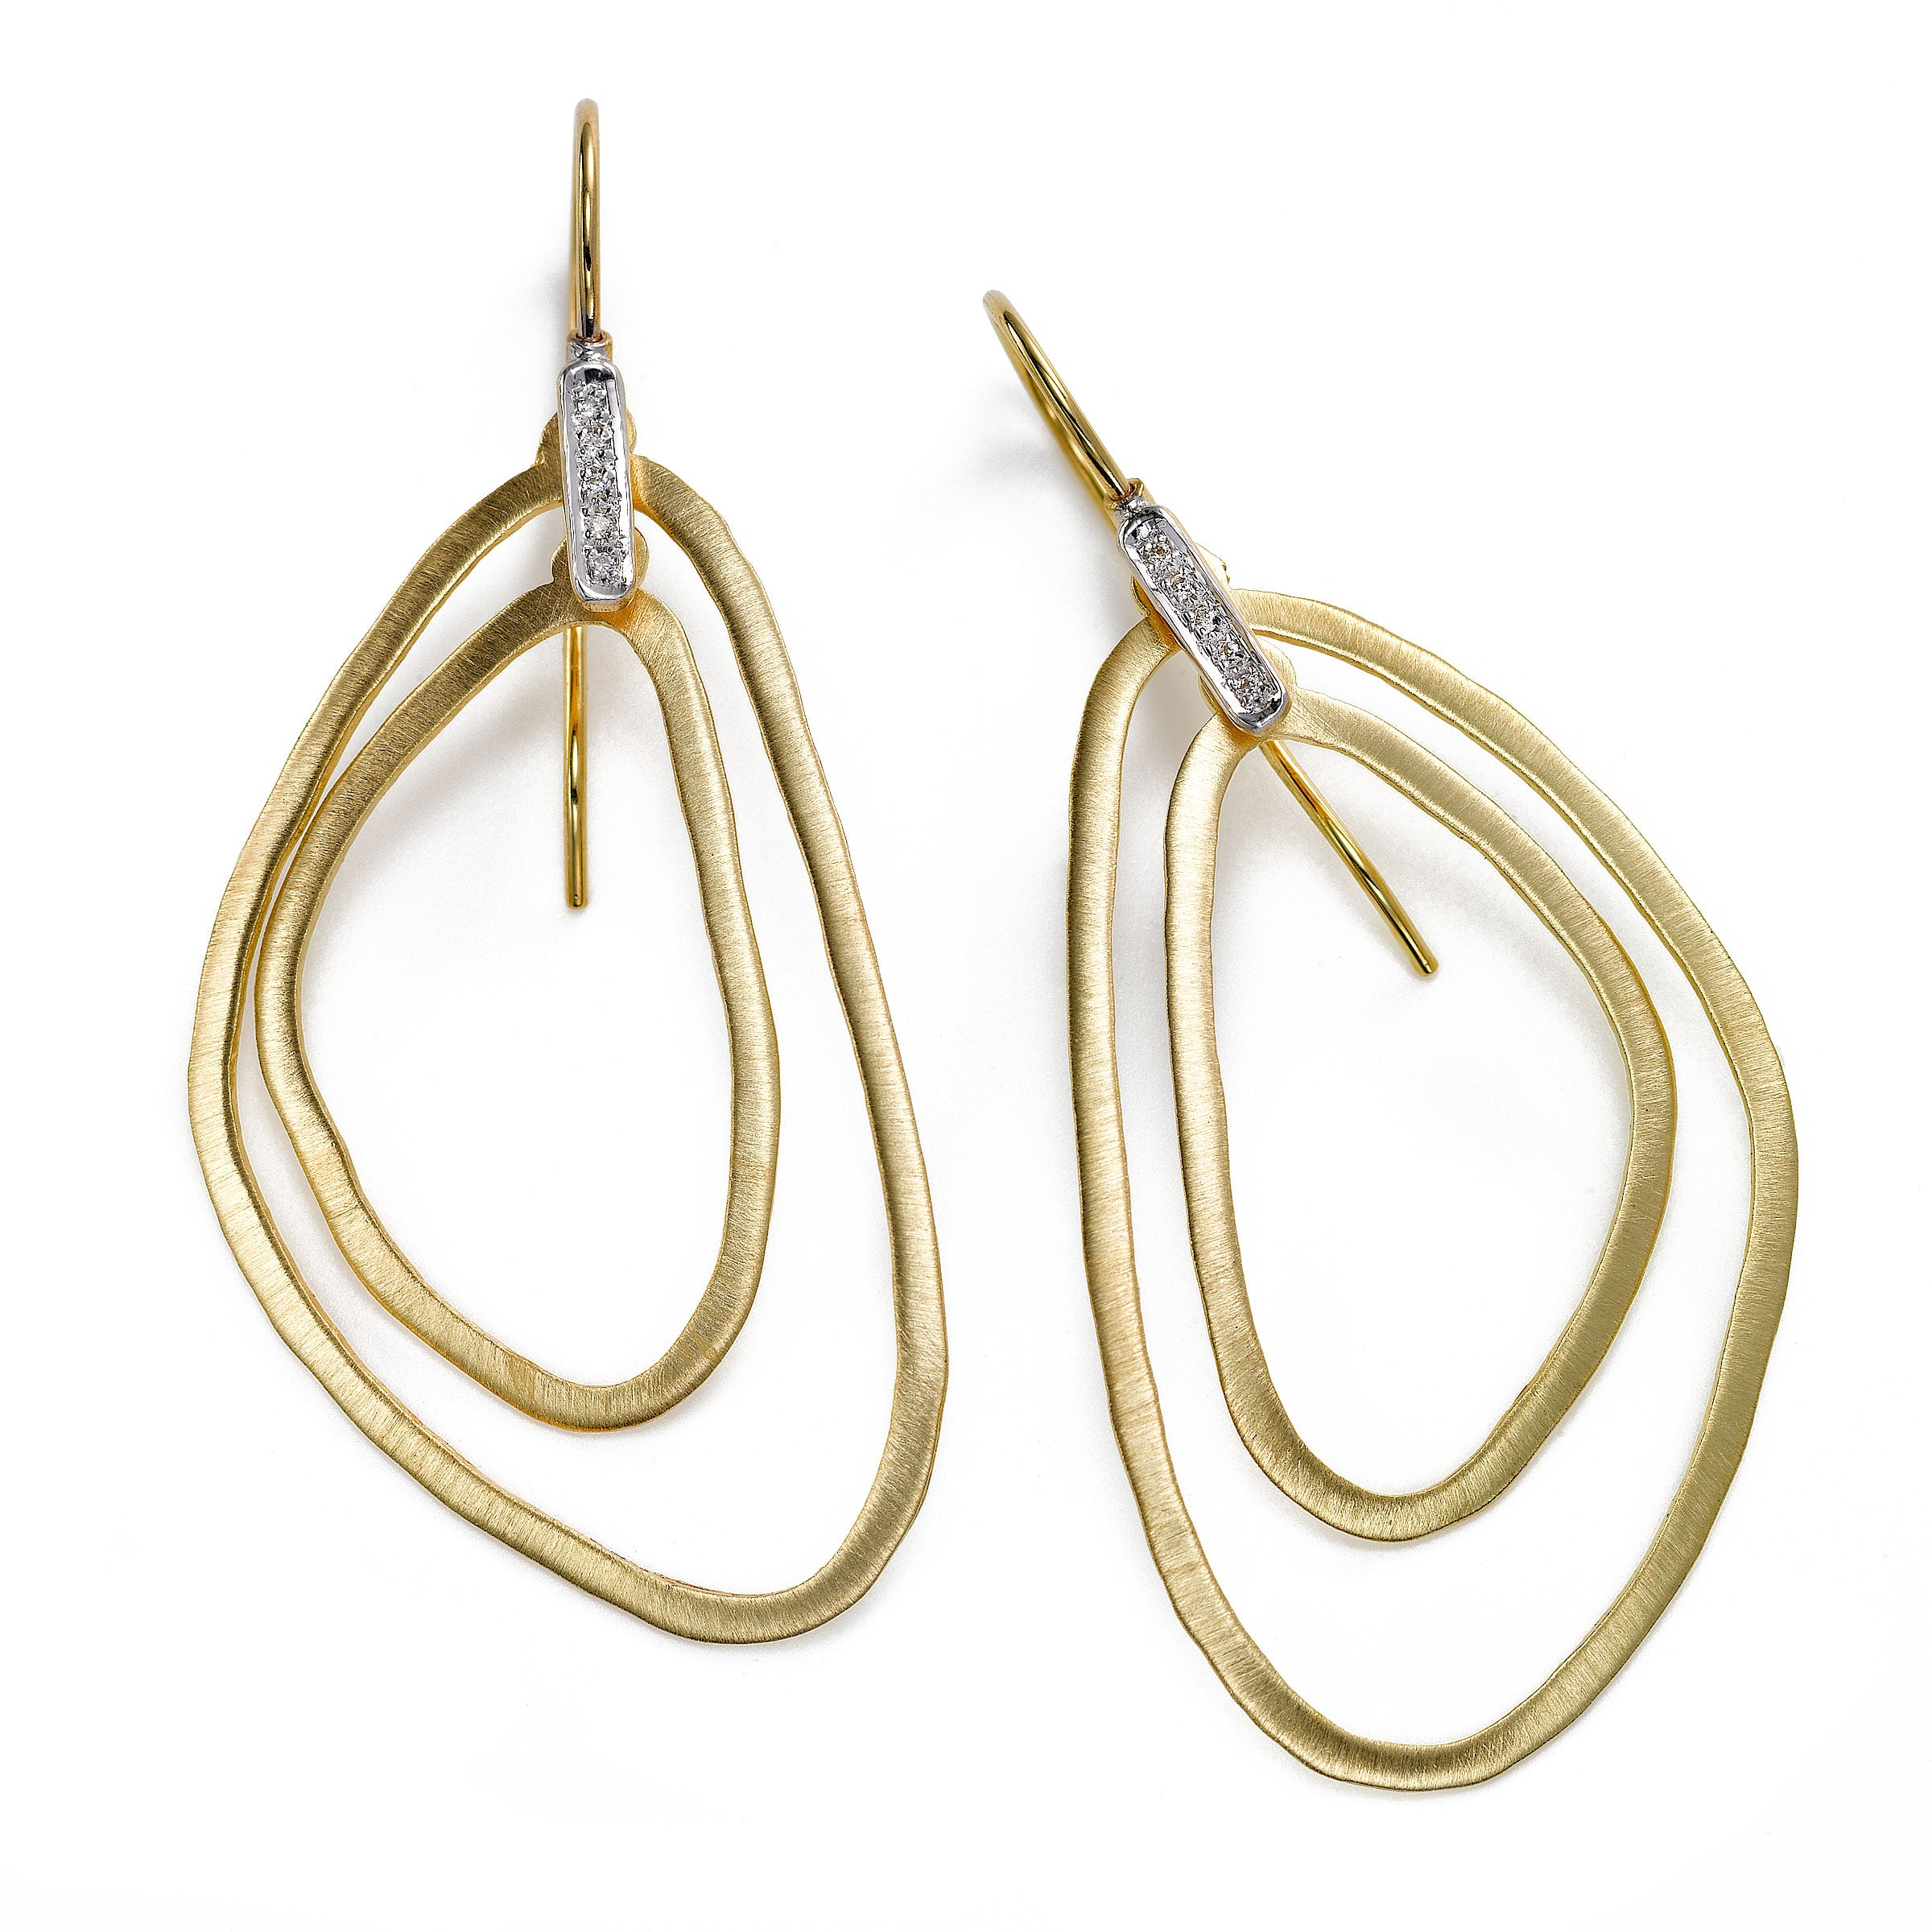 Double Drop Earrings with Diamond Accent, 14K Yellow Gold